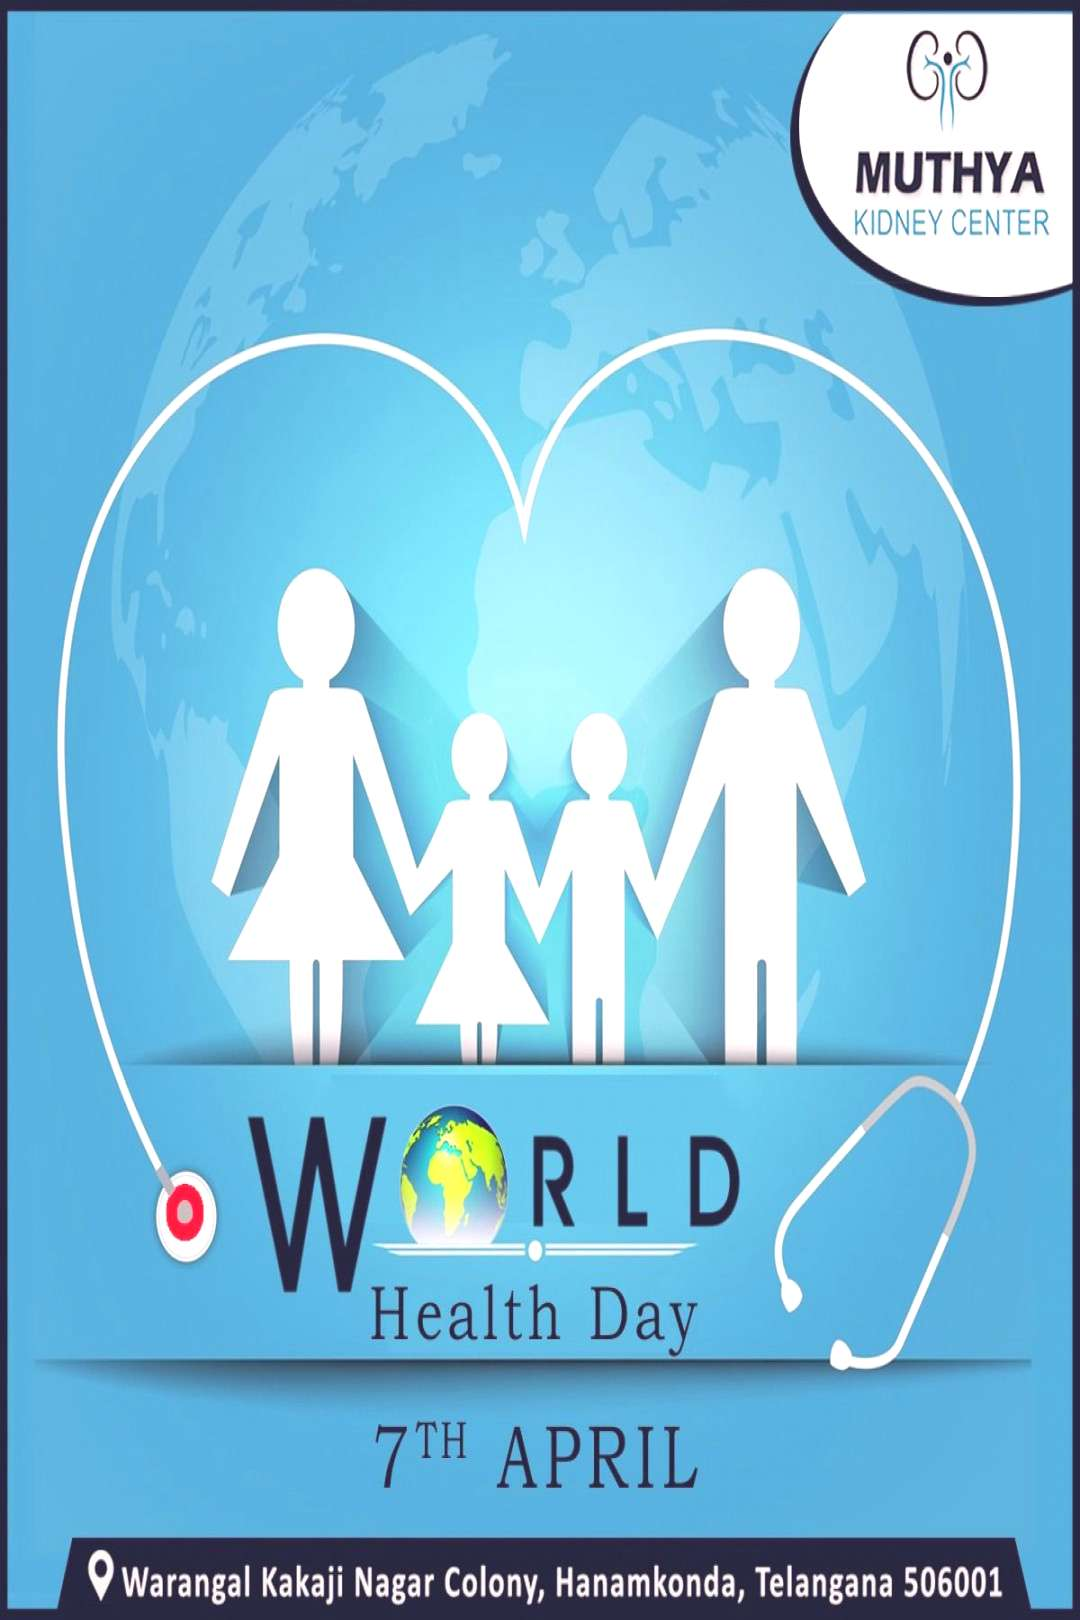 On this world health day, let's express our gratitude to all Doctors, nurses, midwives and all fron